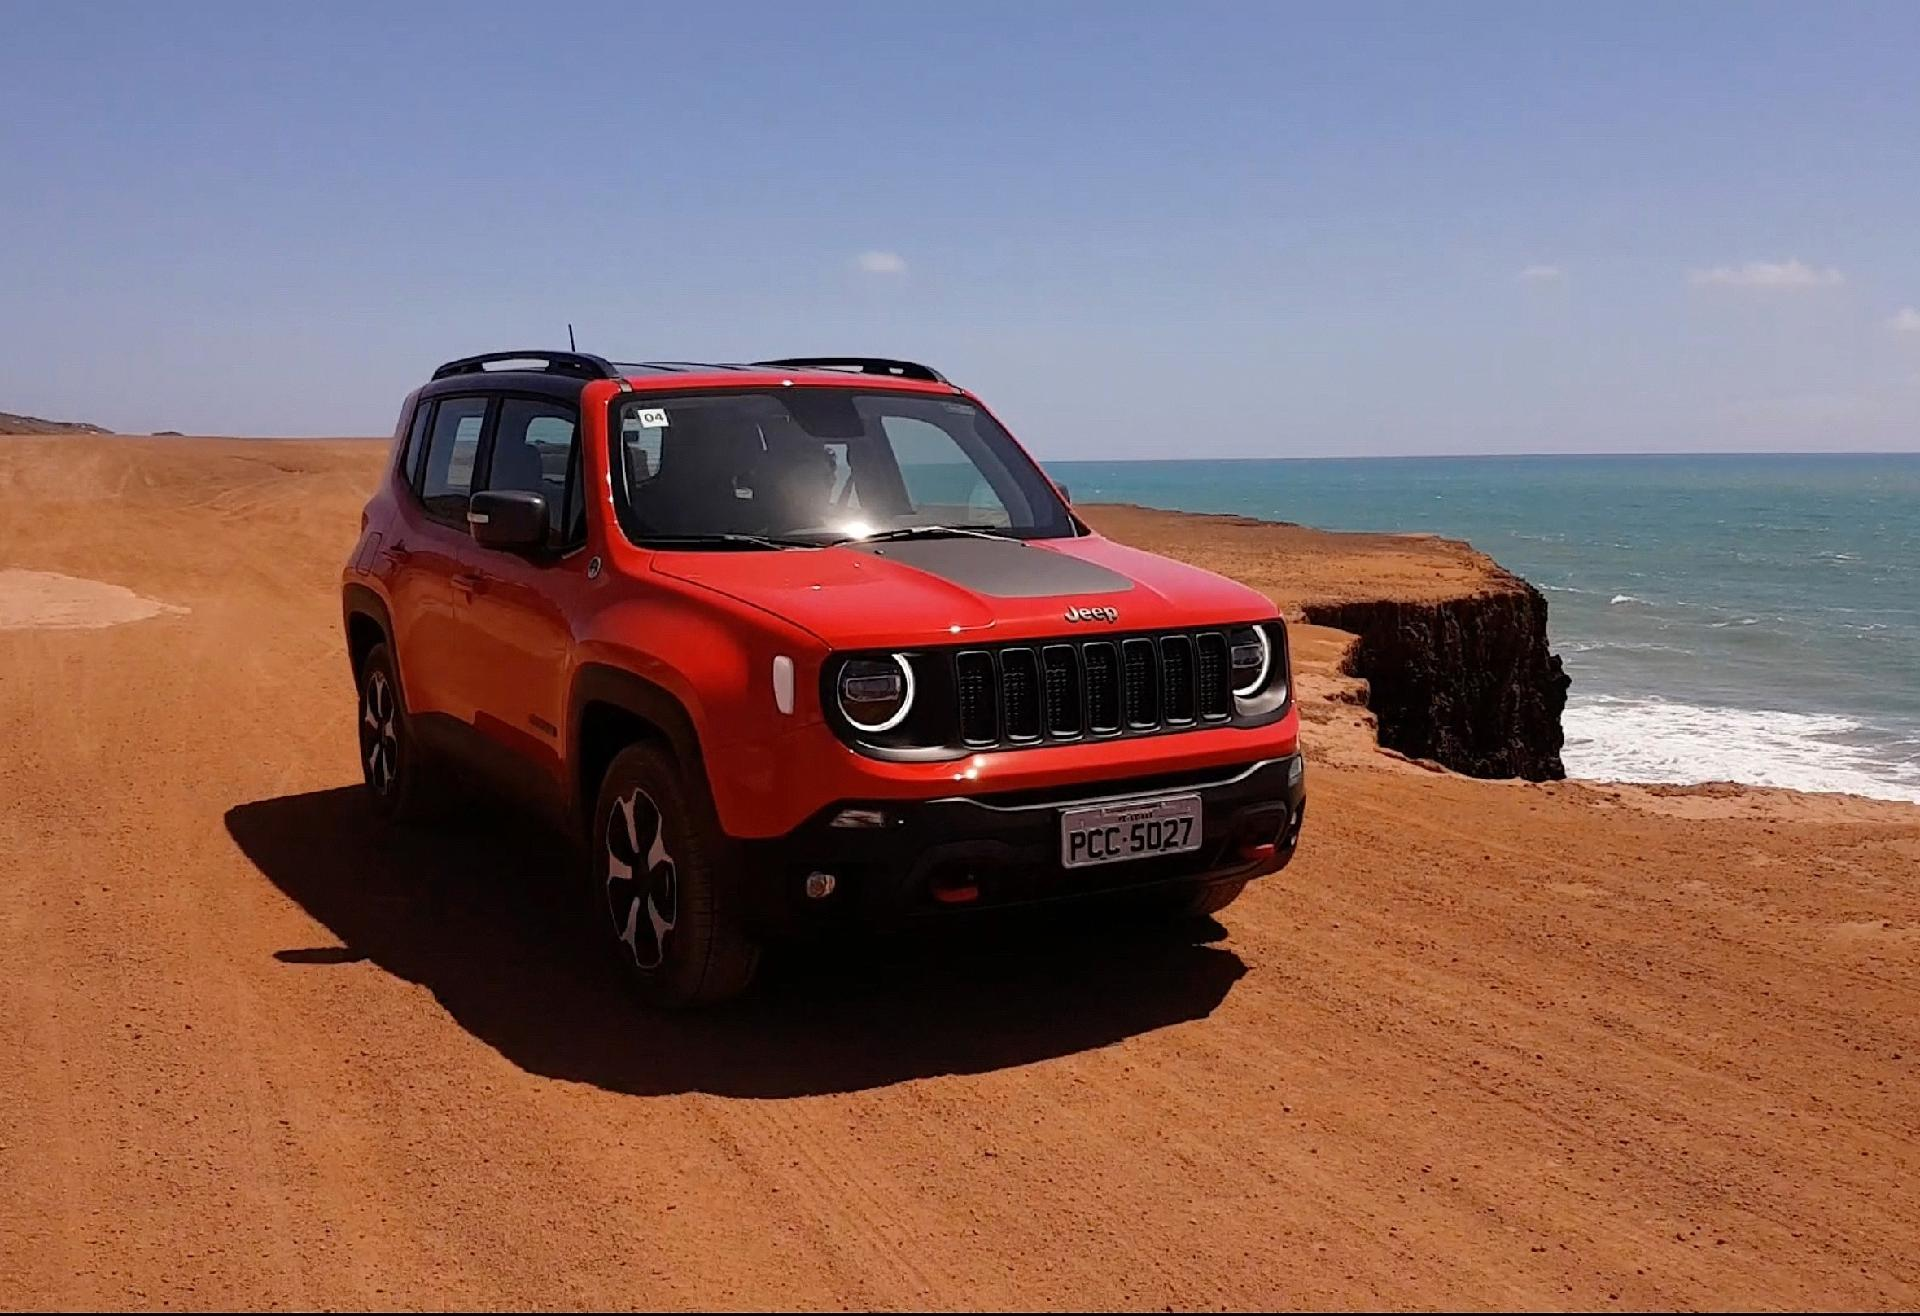 Avaliacao Consegue Ver O Que Muda No Jeep Renegade 2019 Nos